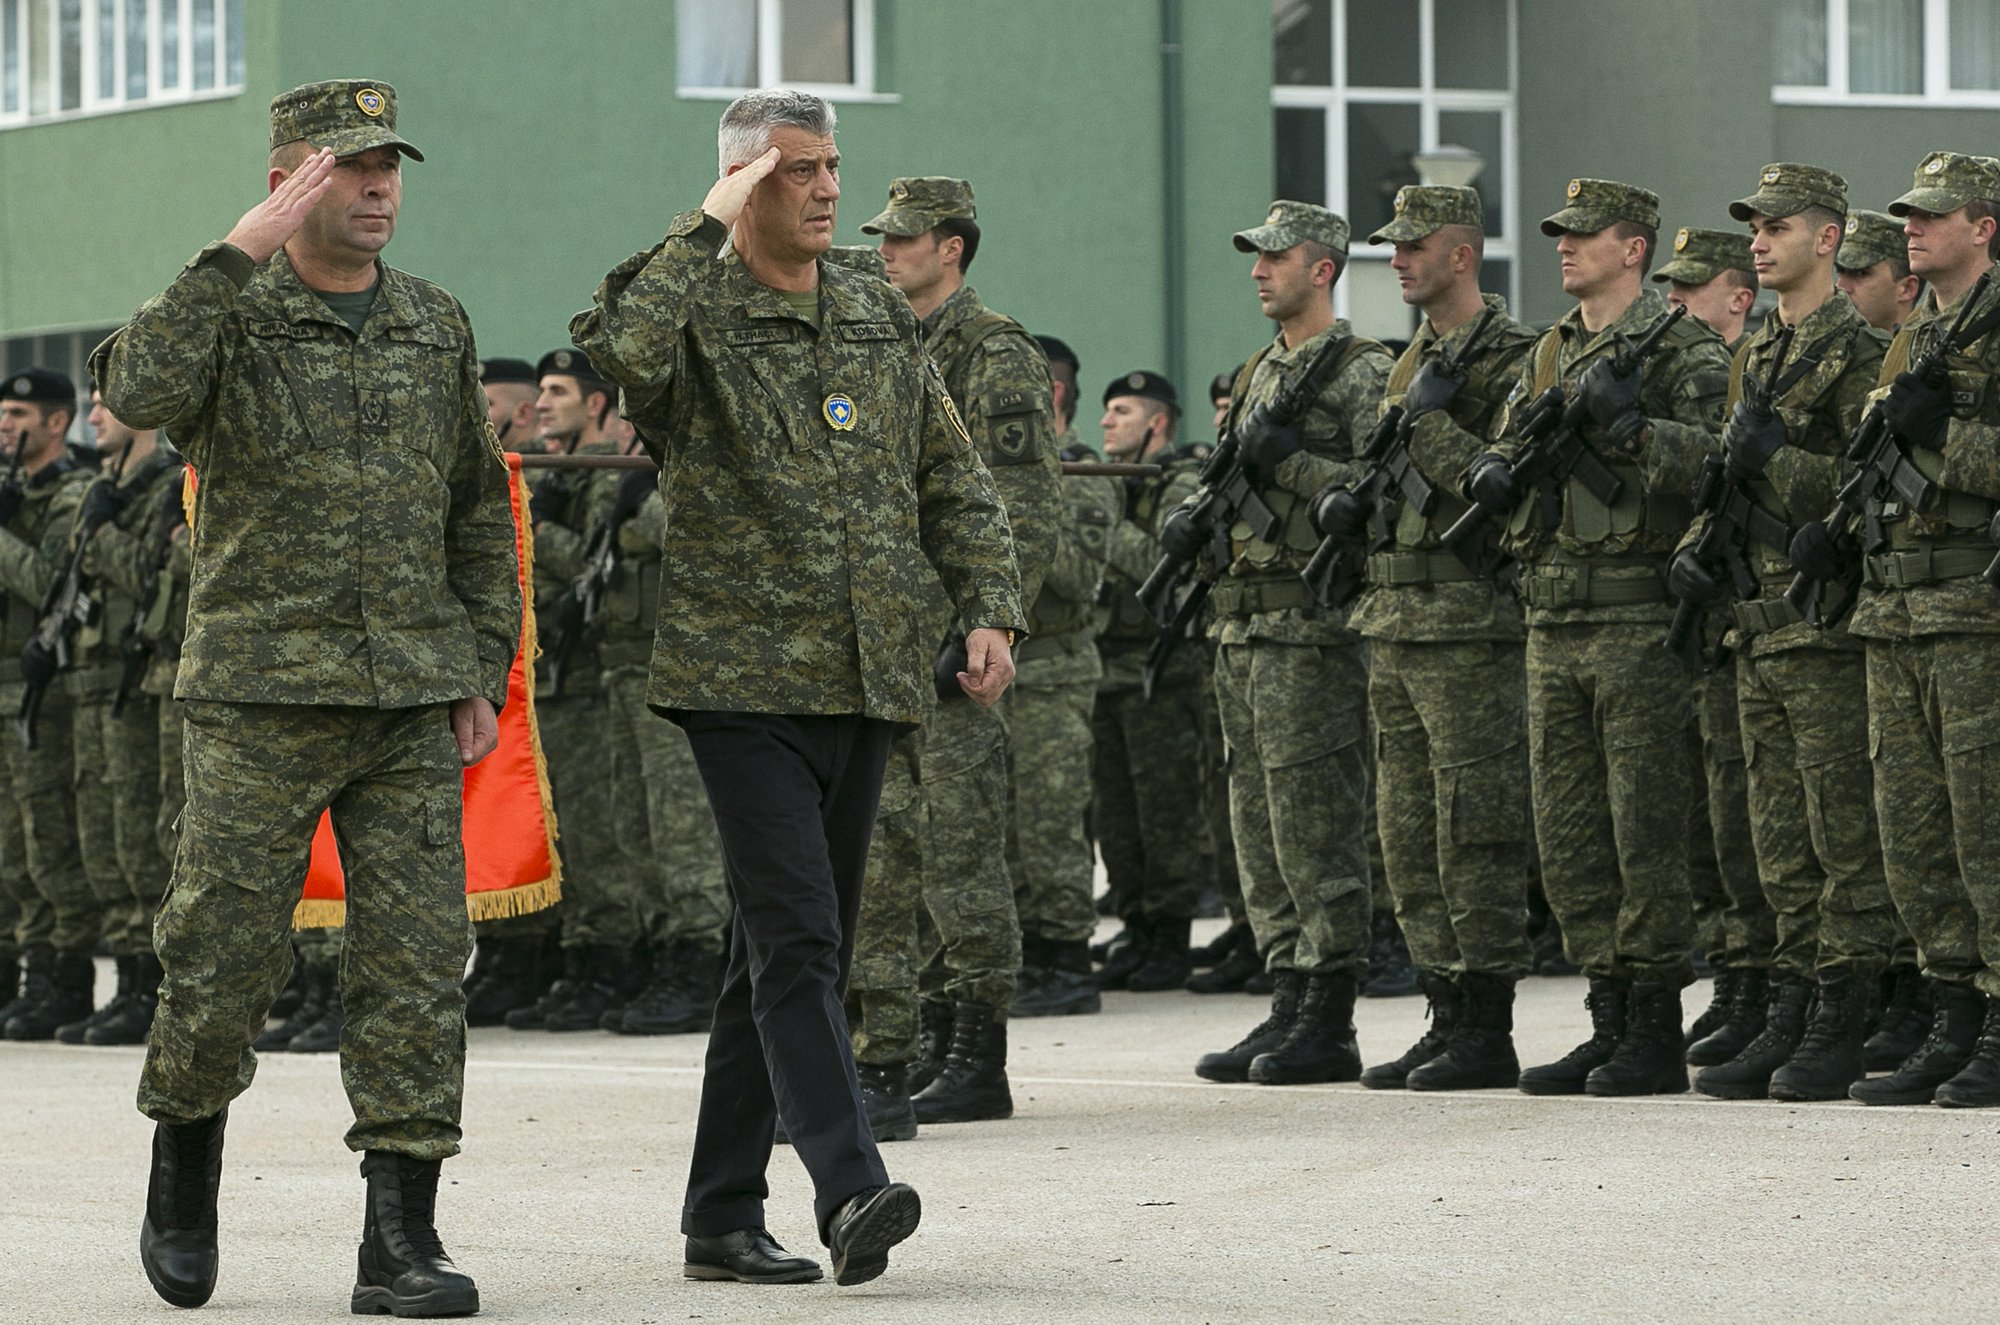 Kosovo parliament votes to form new army, angering Serbia